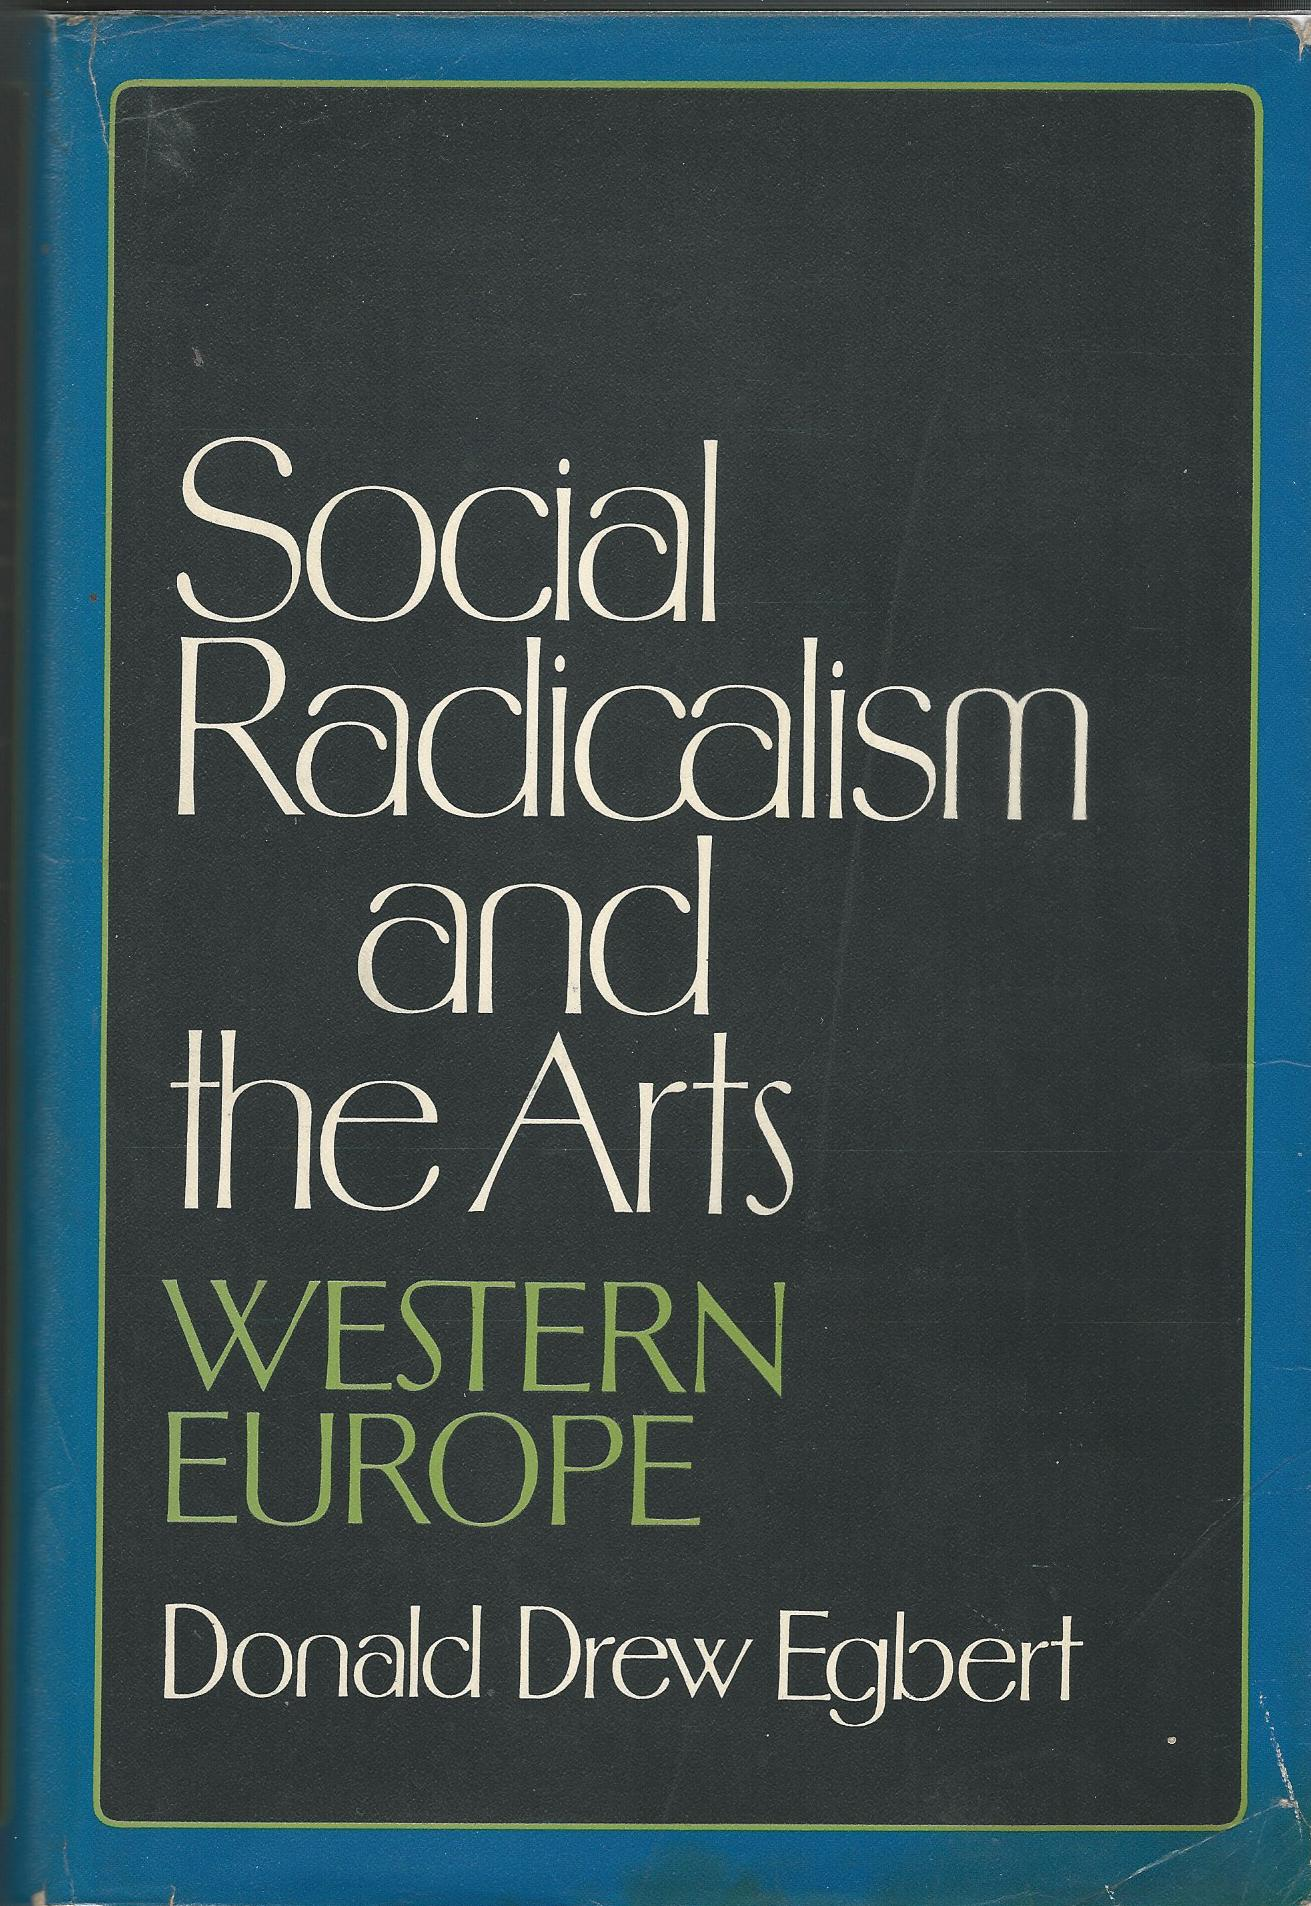 Image for Social Redicalism and the Arts - Western Europe.